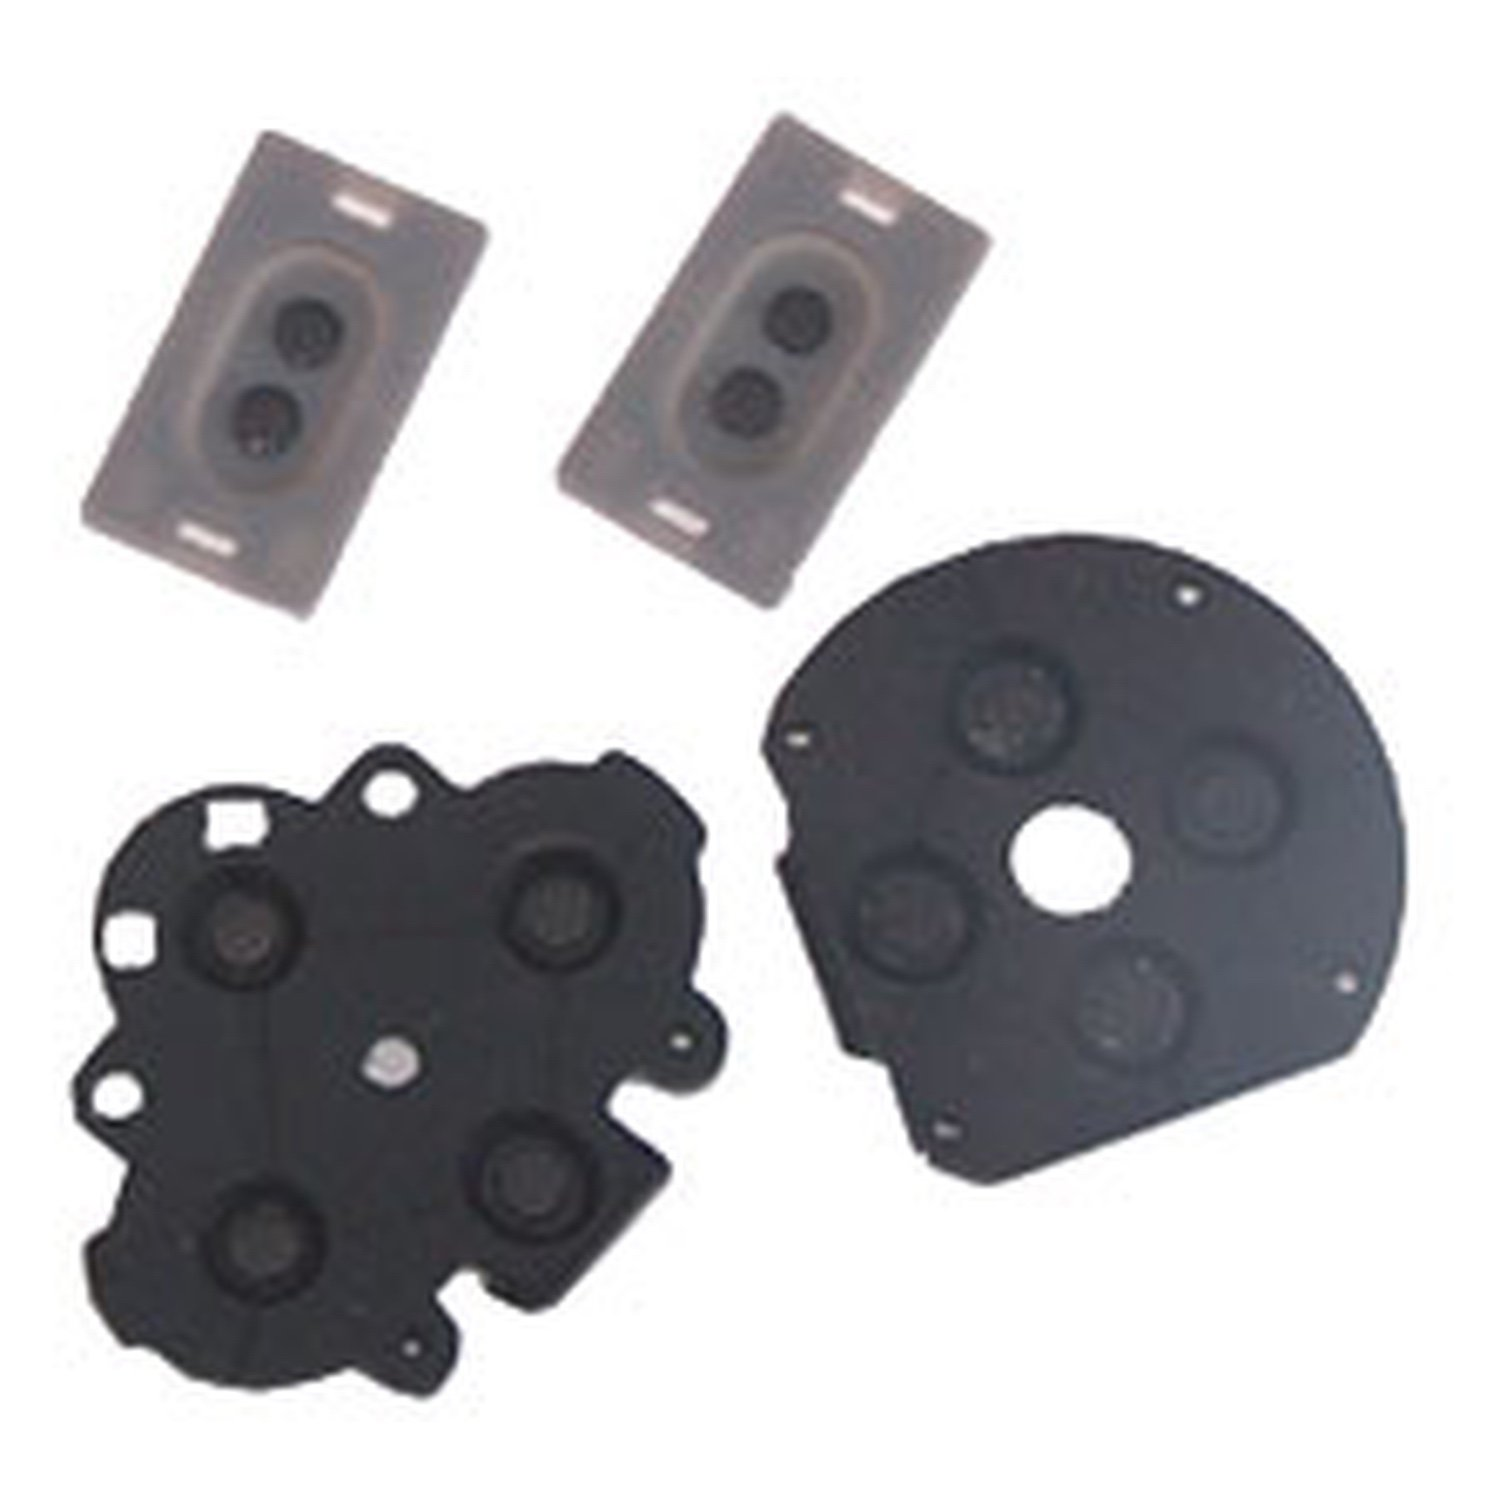 PSP D-Pad Rubber (pack included 4 d-pad of PSP)